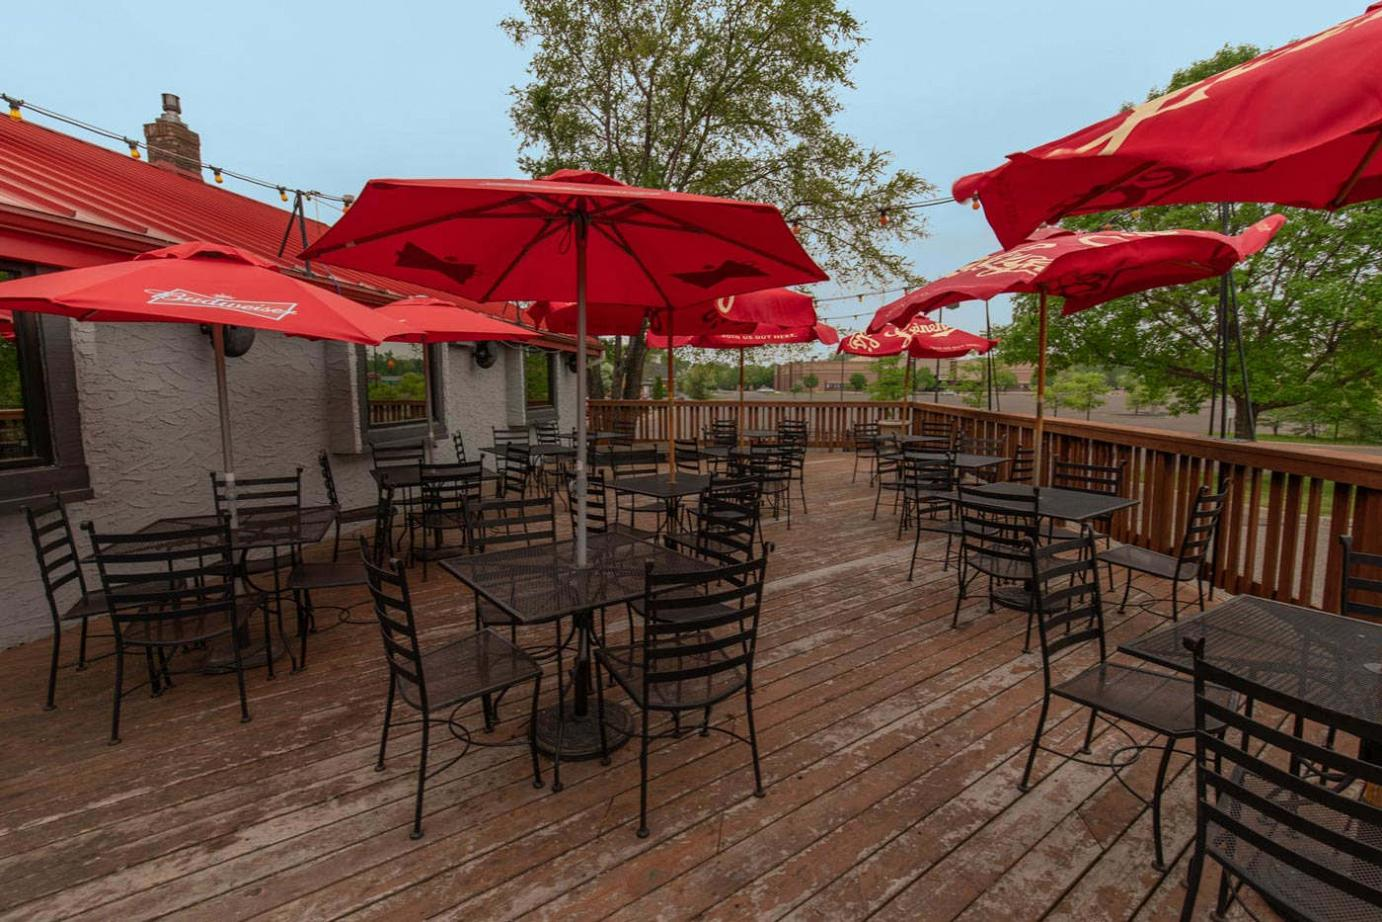 wooden patio, red parasols, black chairs and tables